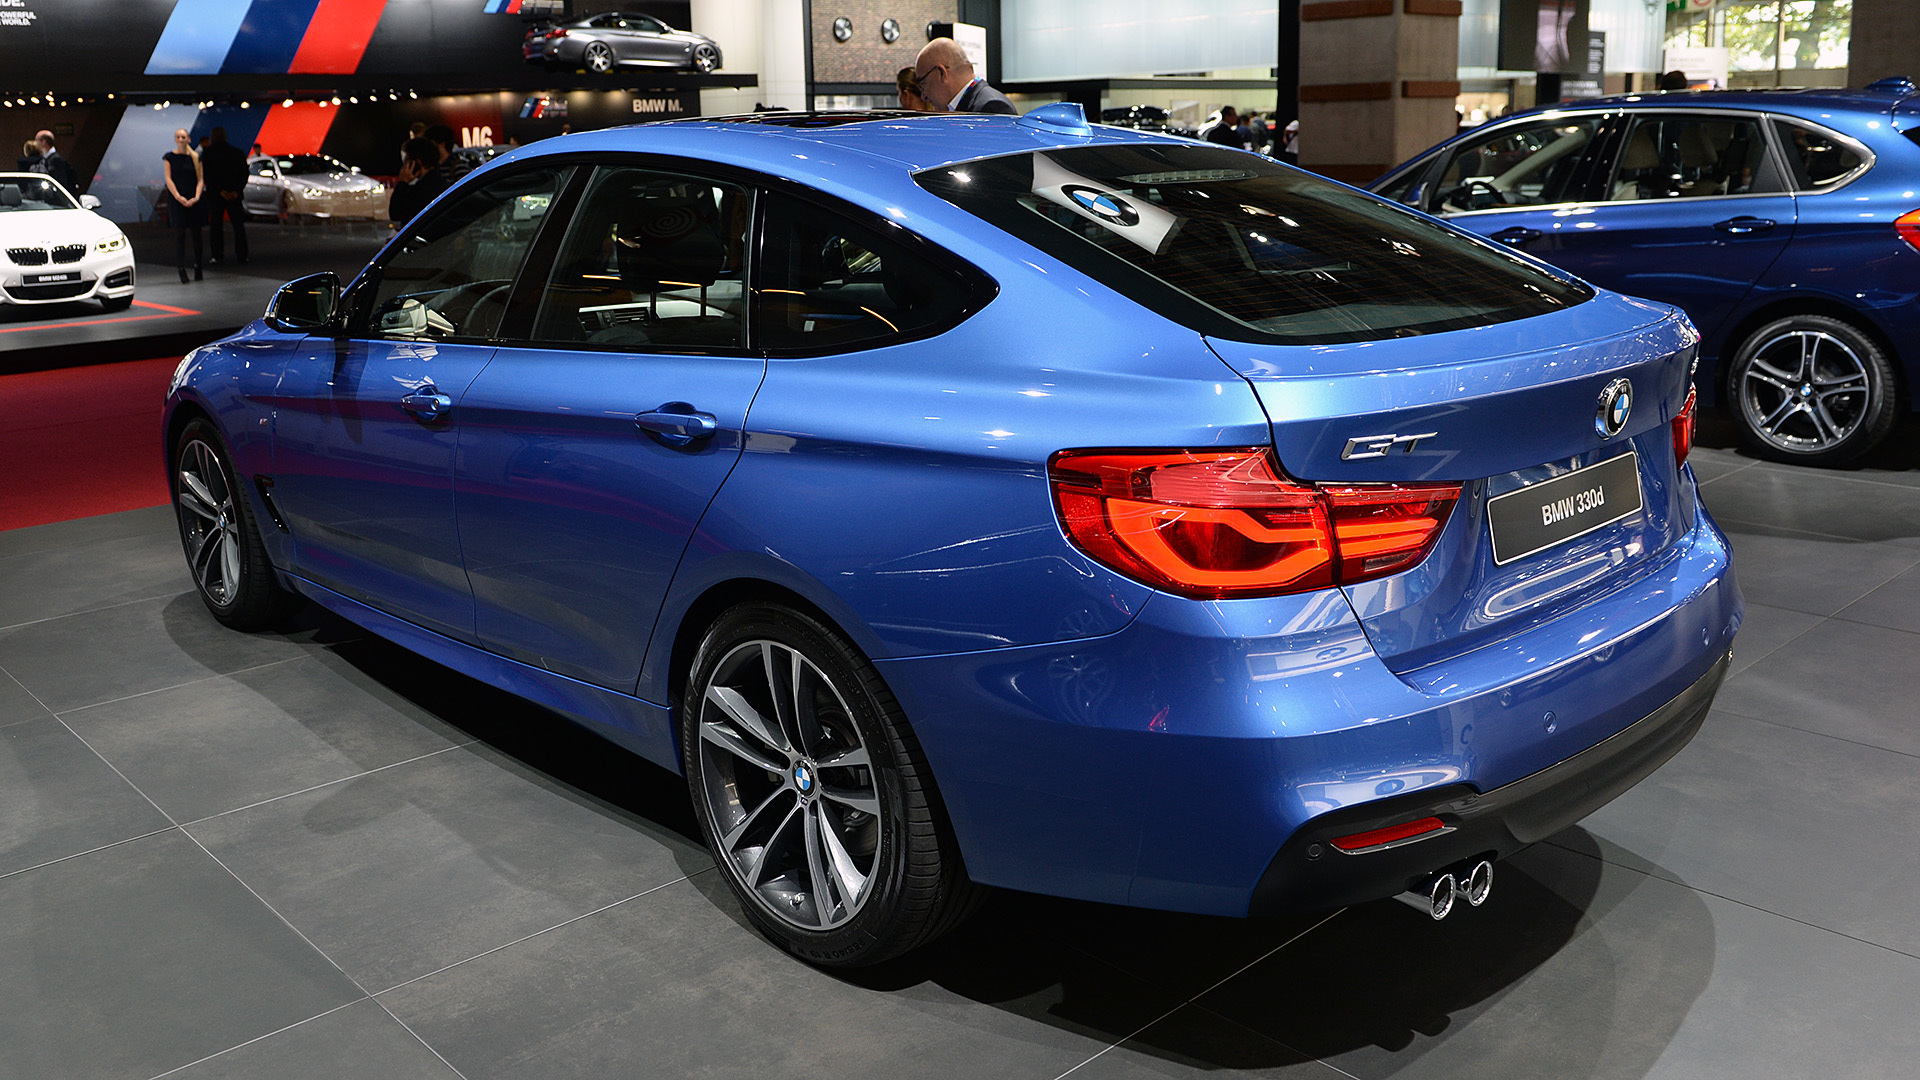 Bmw Certified Pre Owned >> BMW kills 3 Series GT, 6 Series GT and 6 Series Gran Coupe models | Autoblog